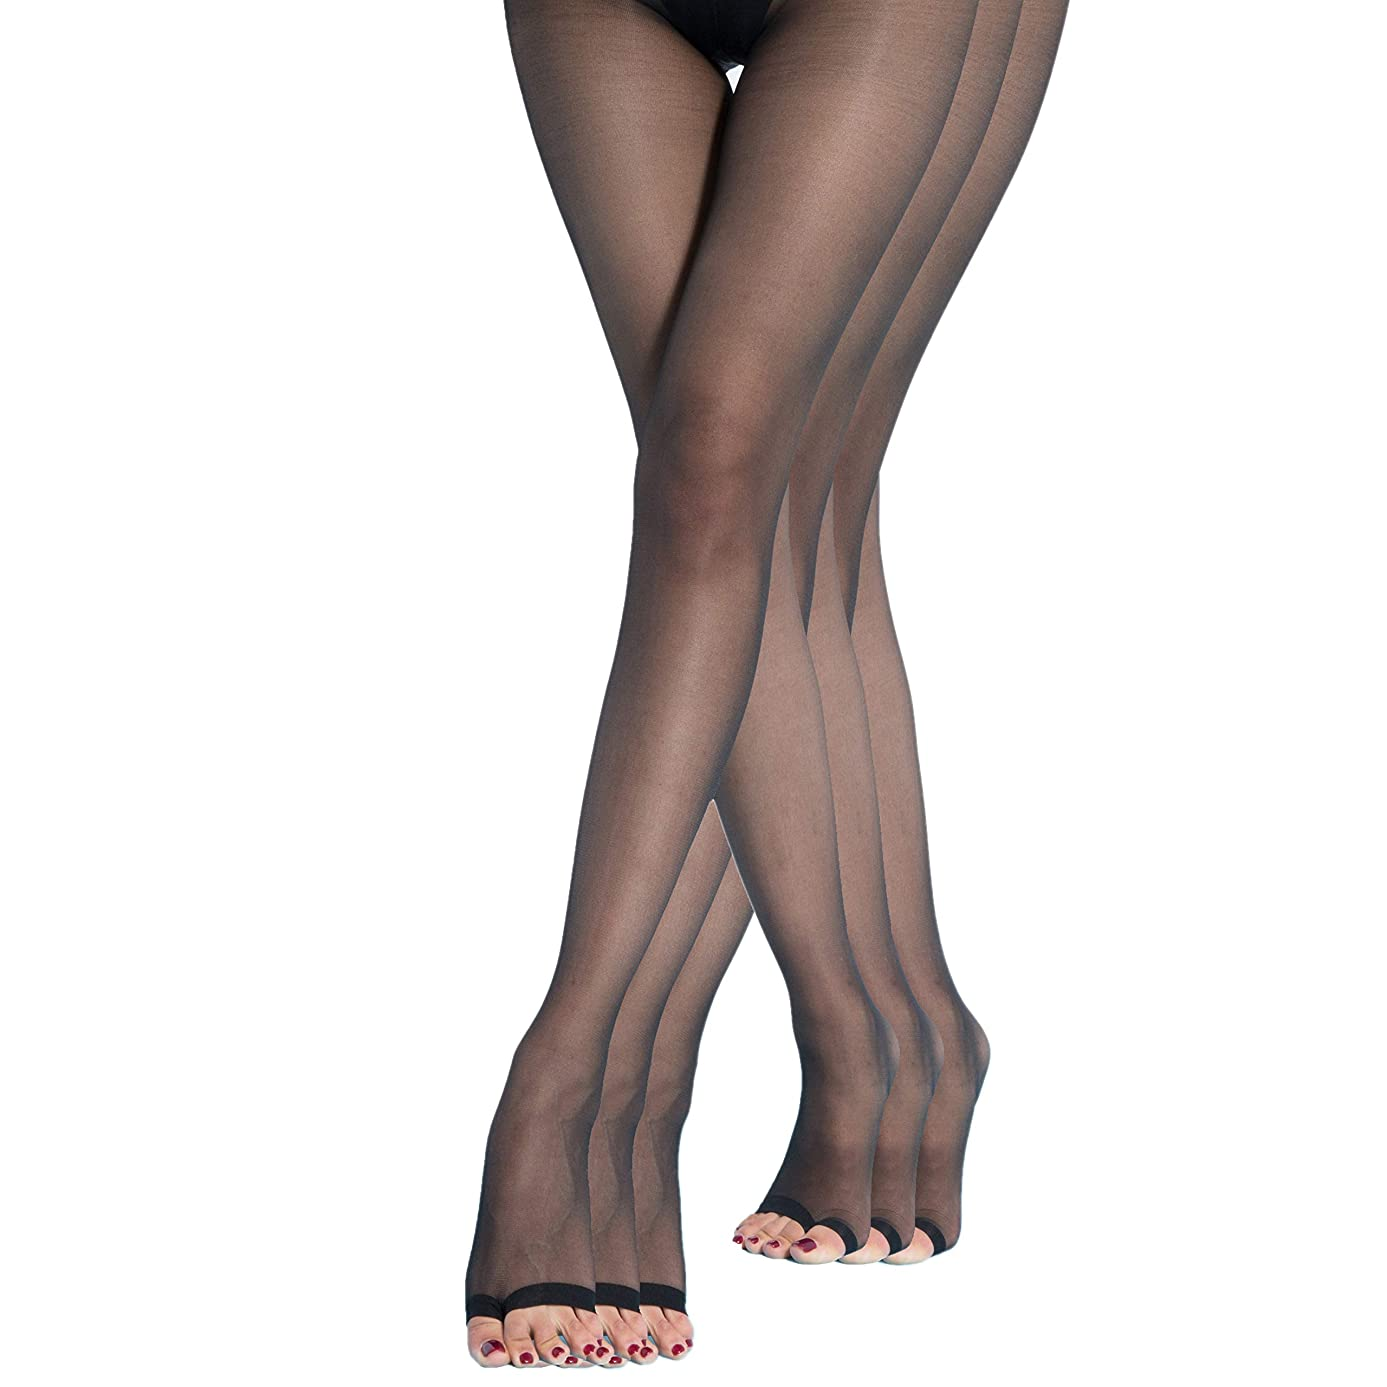 Womens Open Toe Pantyhose 3 pack Ultra Soft Stirrup Sheer Stockings T crotch Tights